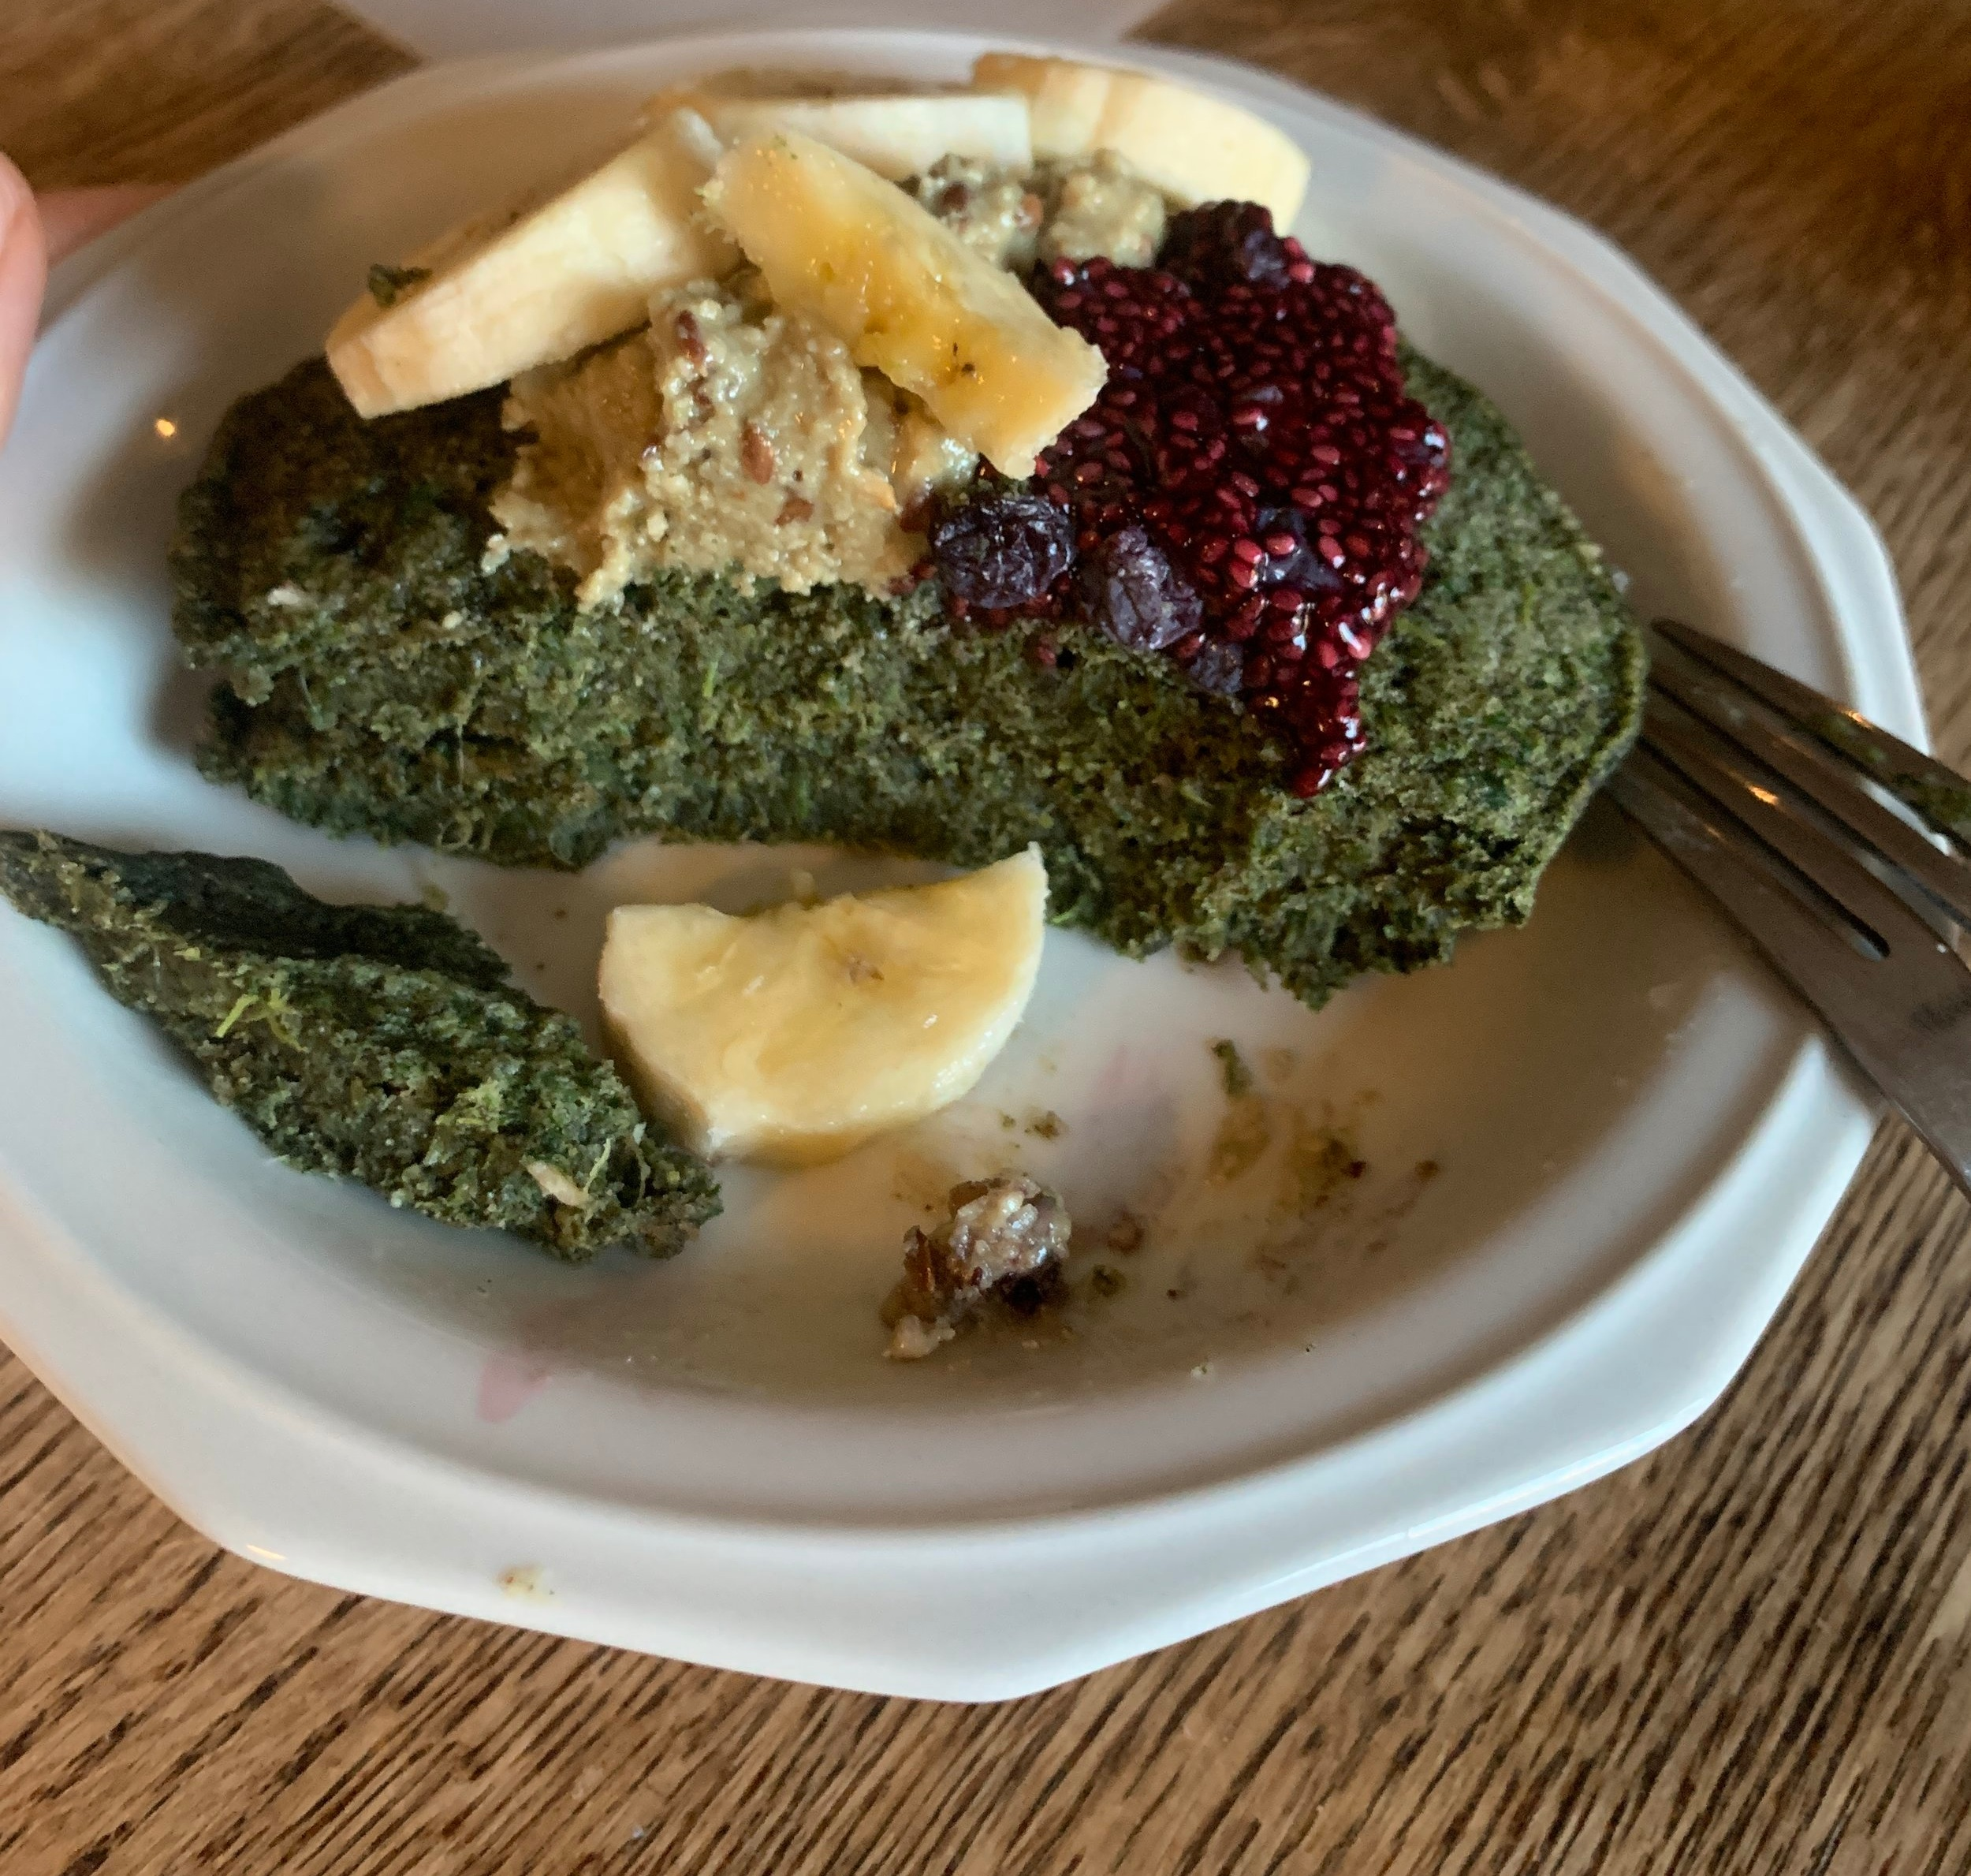 Spinach buckwheat pancakes with bananas, chia jam, and nutseed butter